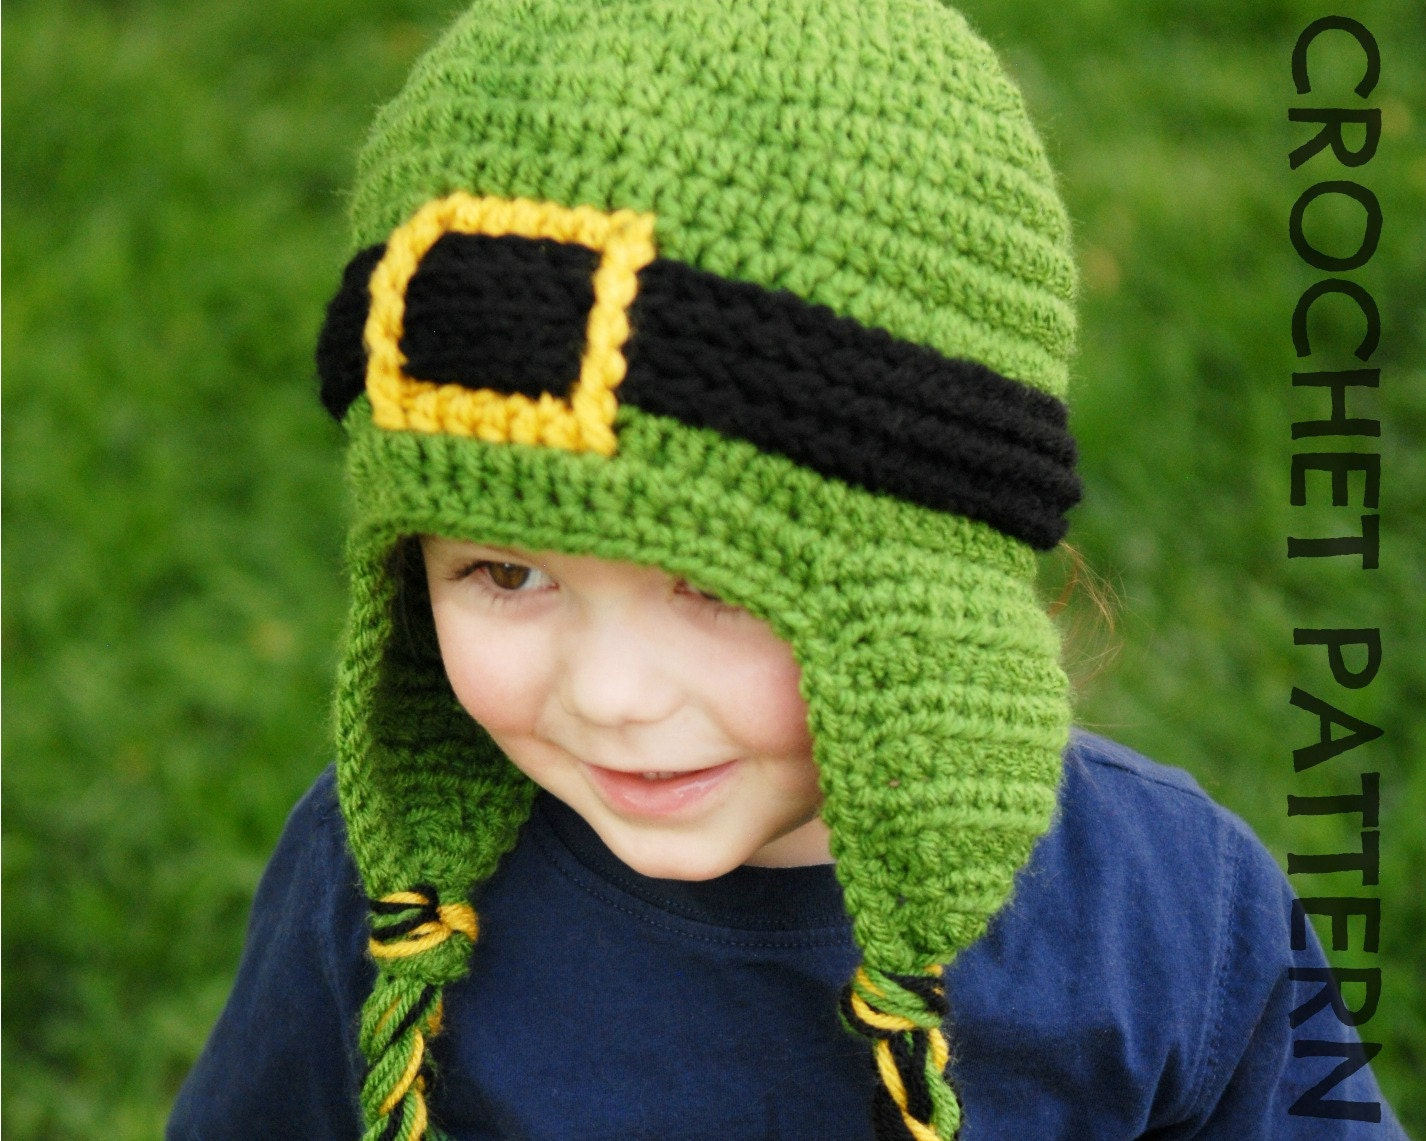 Crochet Pattern Leprechaun Hat : CROCHET HAT PATTERN Leprechaun Earflap by PlayinHookyDesigns